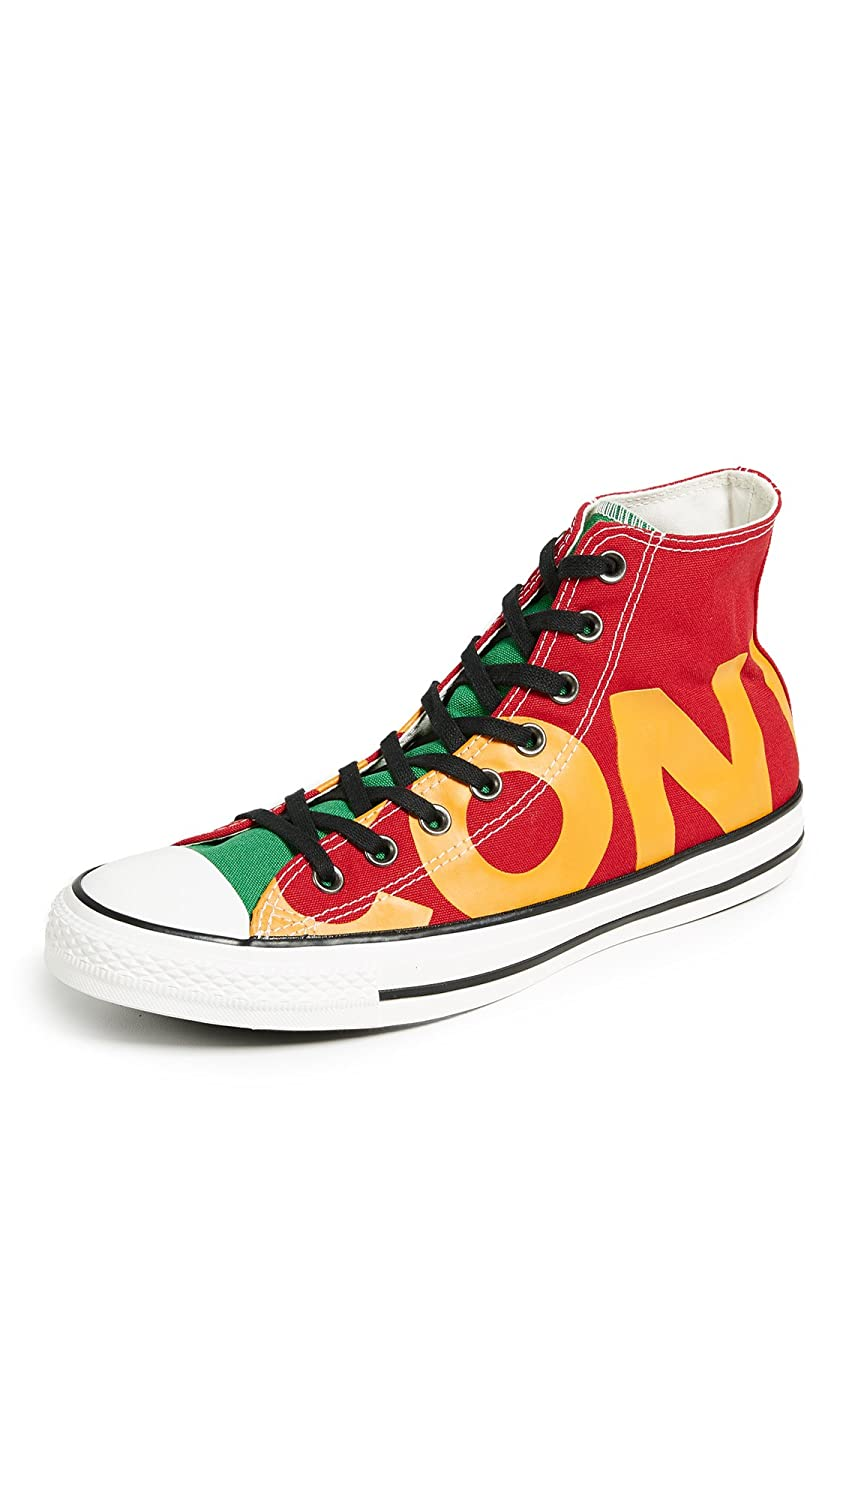 Converse Mens Chuck Taylor All Star Hi Canvas Trainers 39.5 EU|Enamel Red Yellow